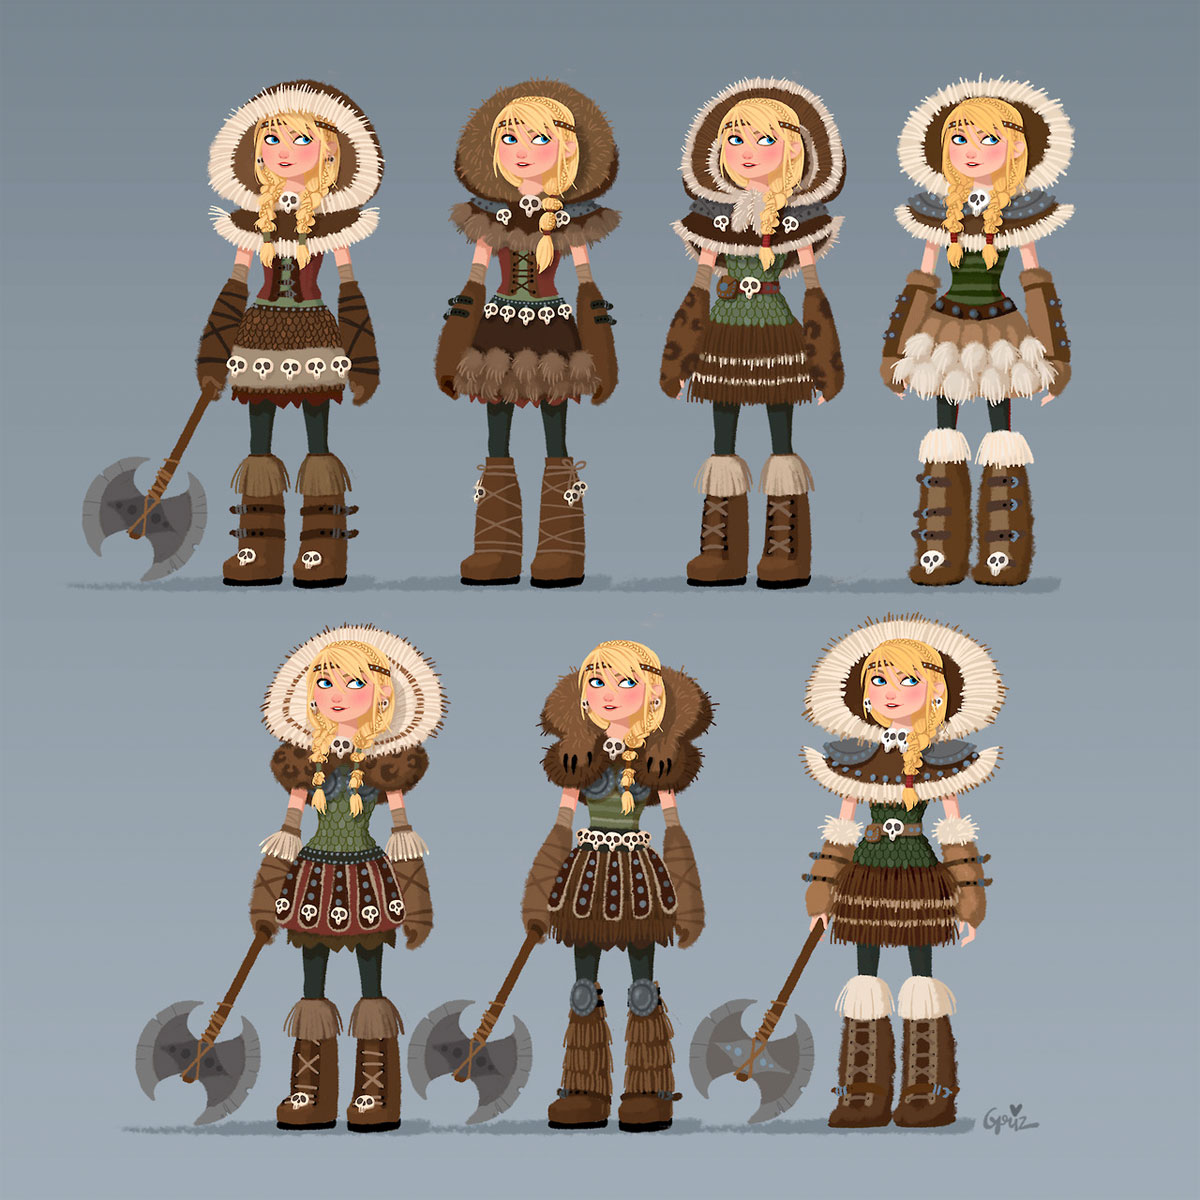 Uncategorized How To Train Your Dragon Astrid image howtotrainyourdragon2 astrid jpg how to train your jpg